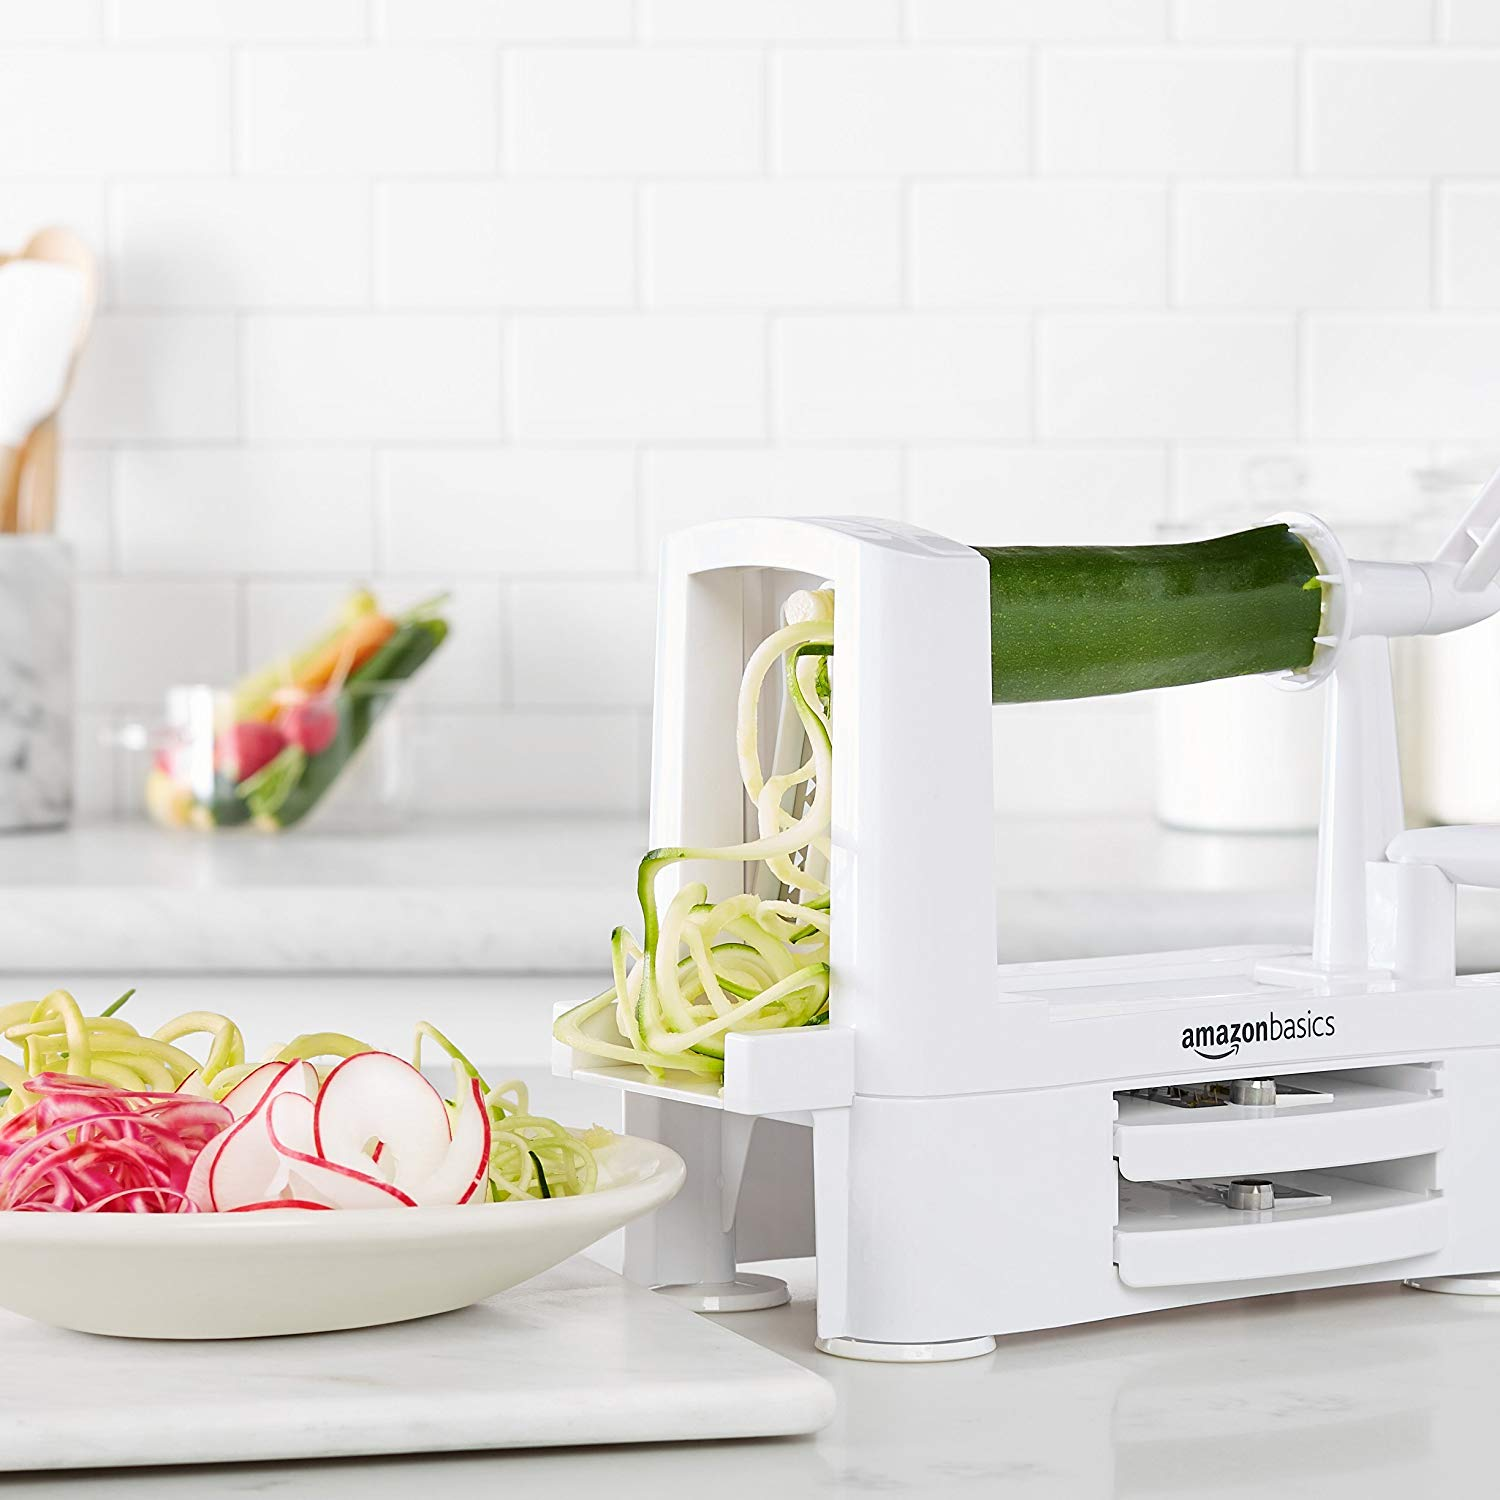 3-Blade Vegetable Spiralizer